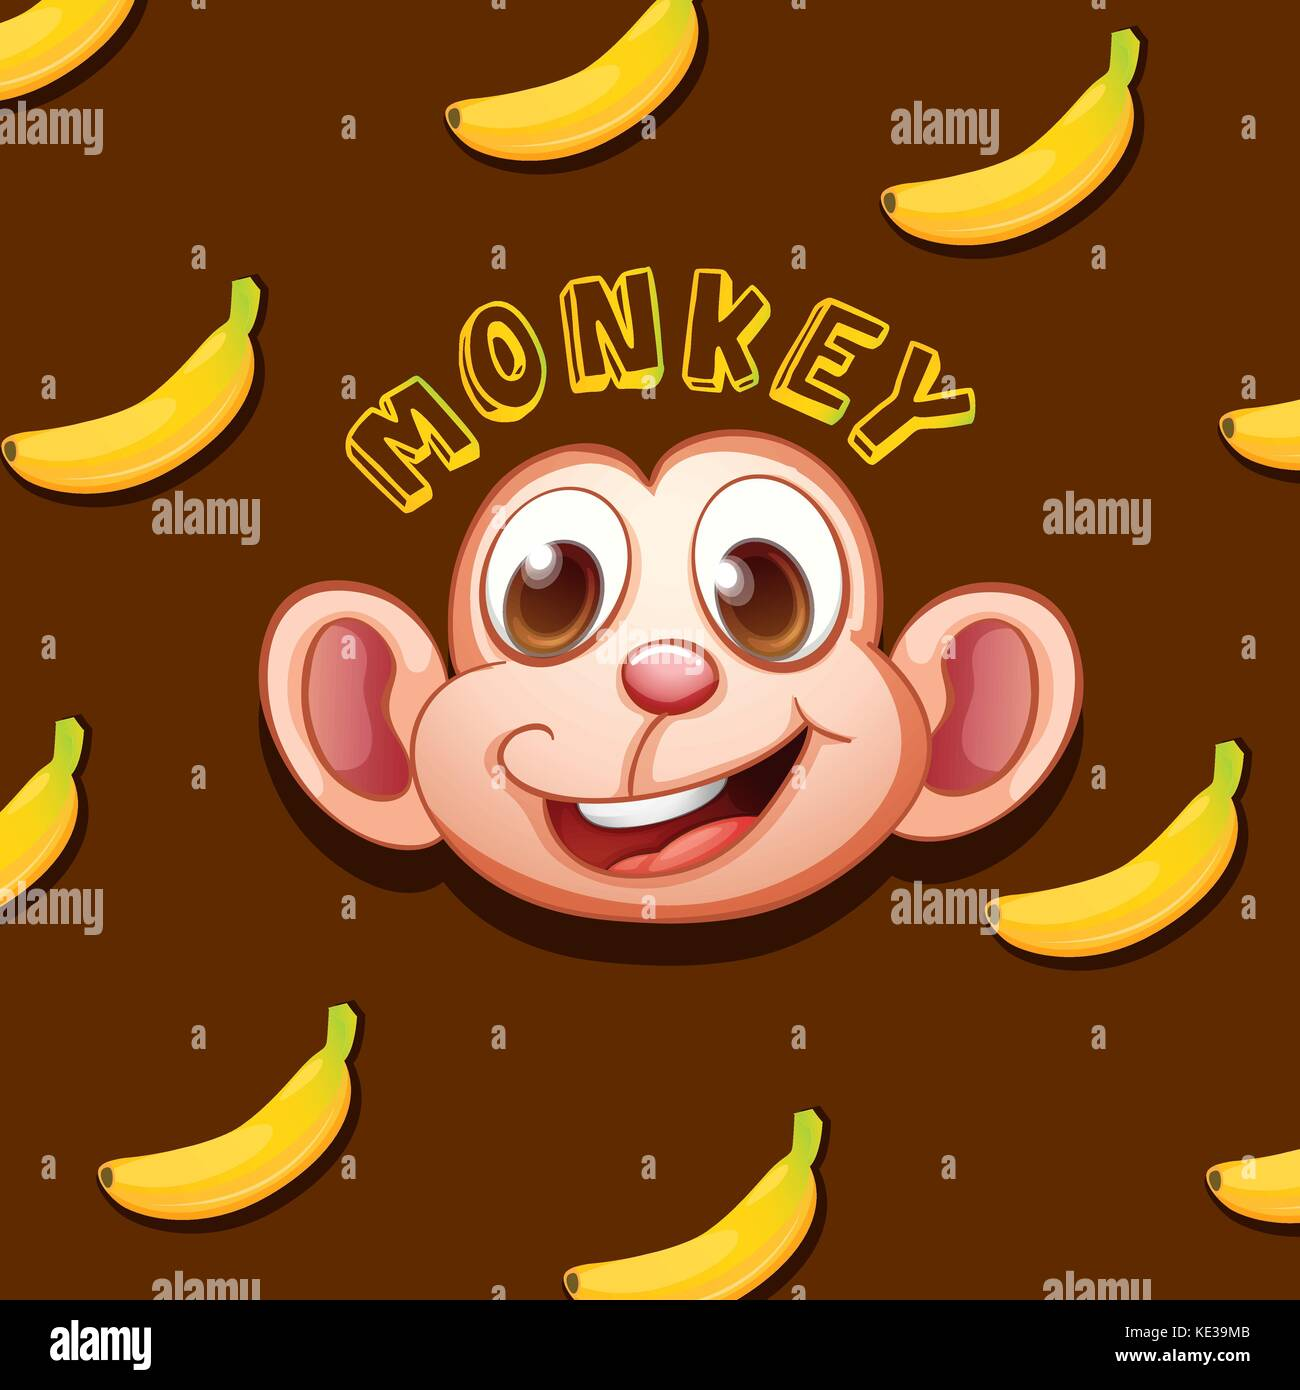 Smiling Banana Face Stock Vector Images Alamy